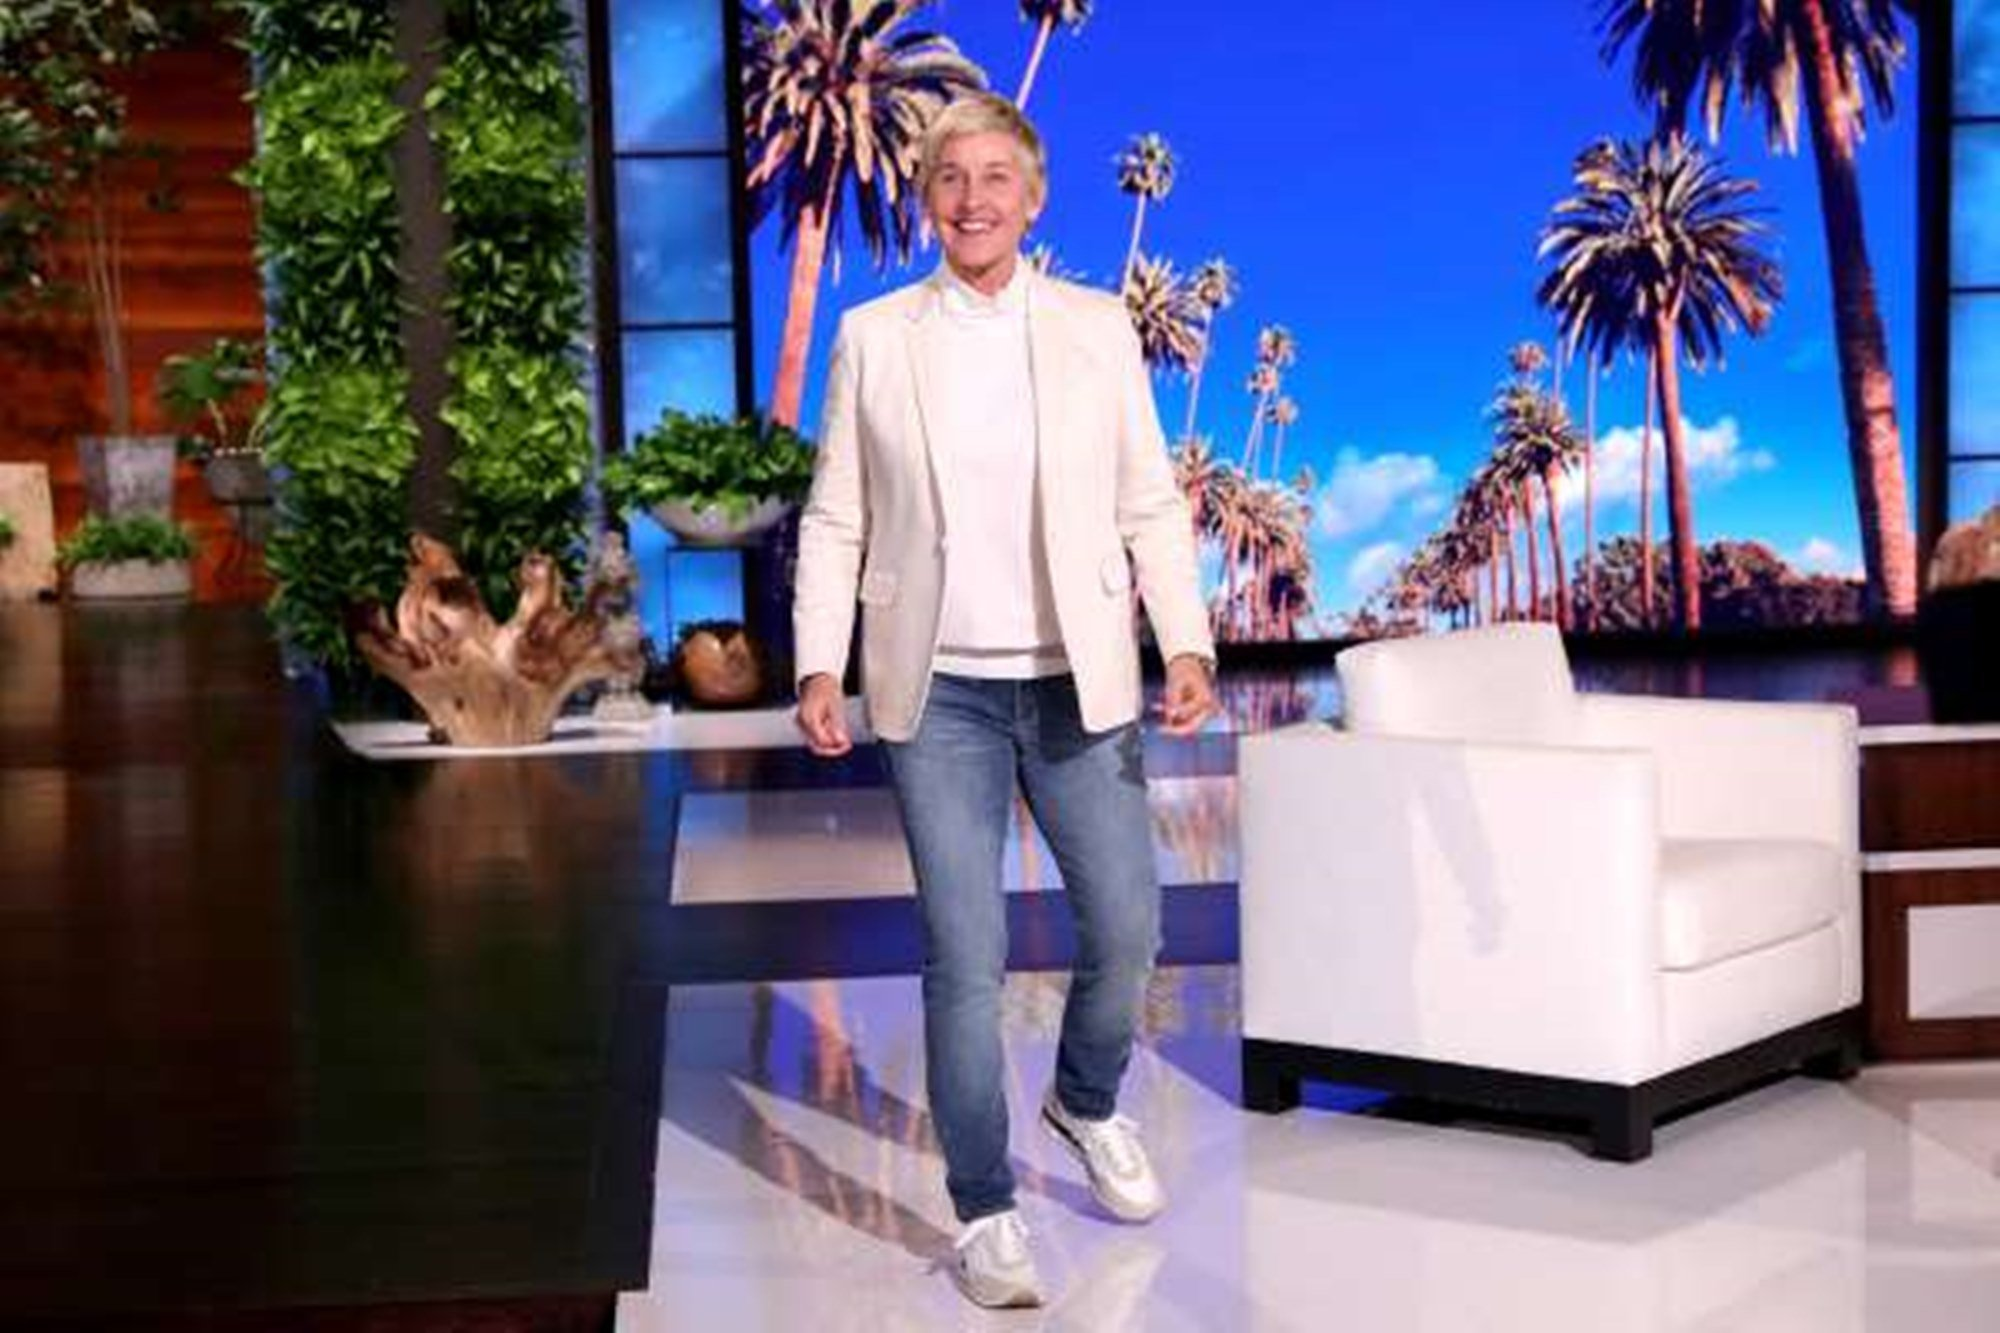 Ellen DeGeneres Scores Big In Ratings With Season Premiere Apology For 'Toxic Work Environment' — Critics Still Call Her Fake